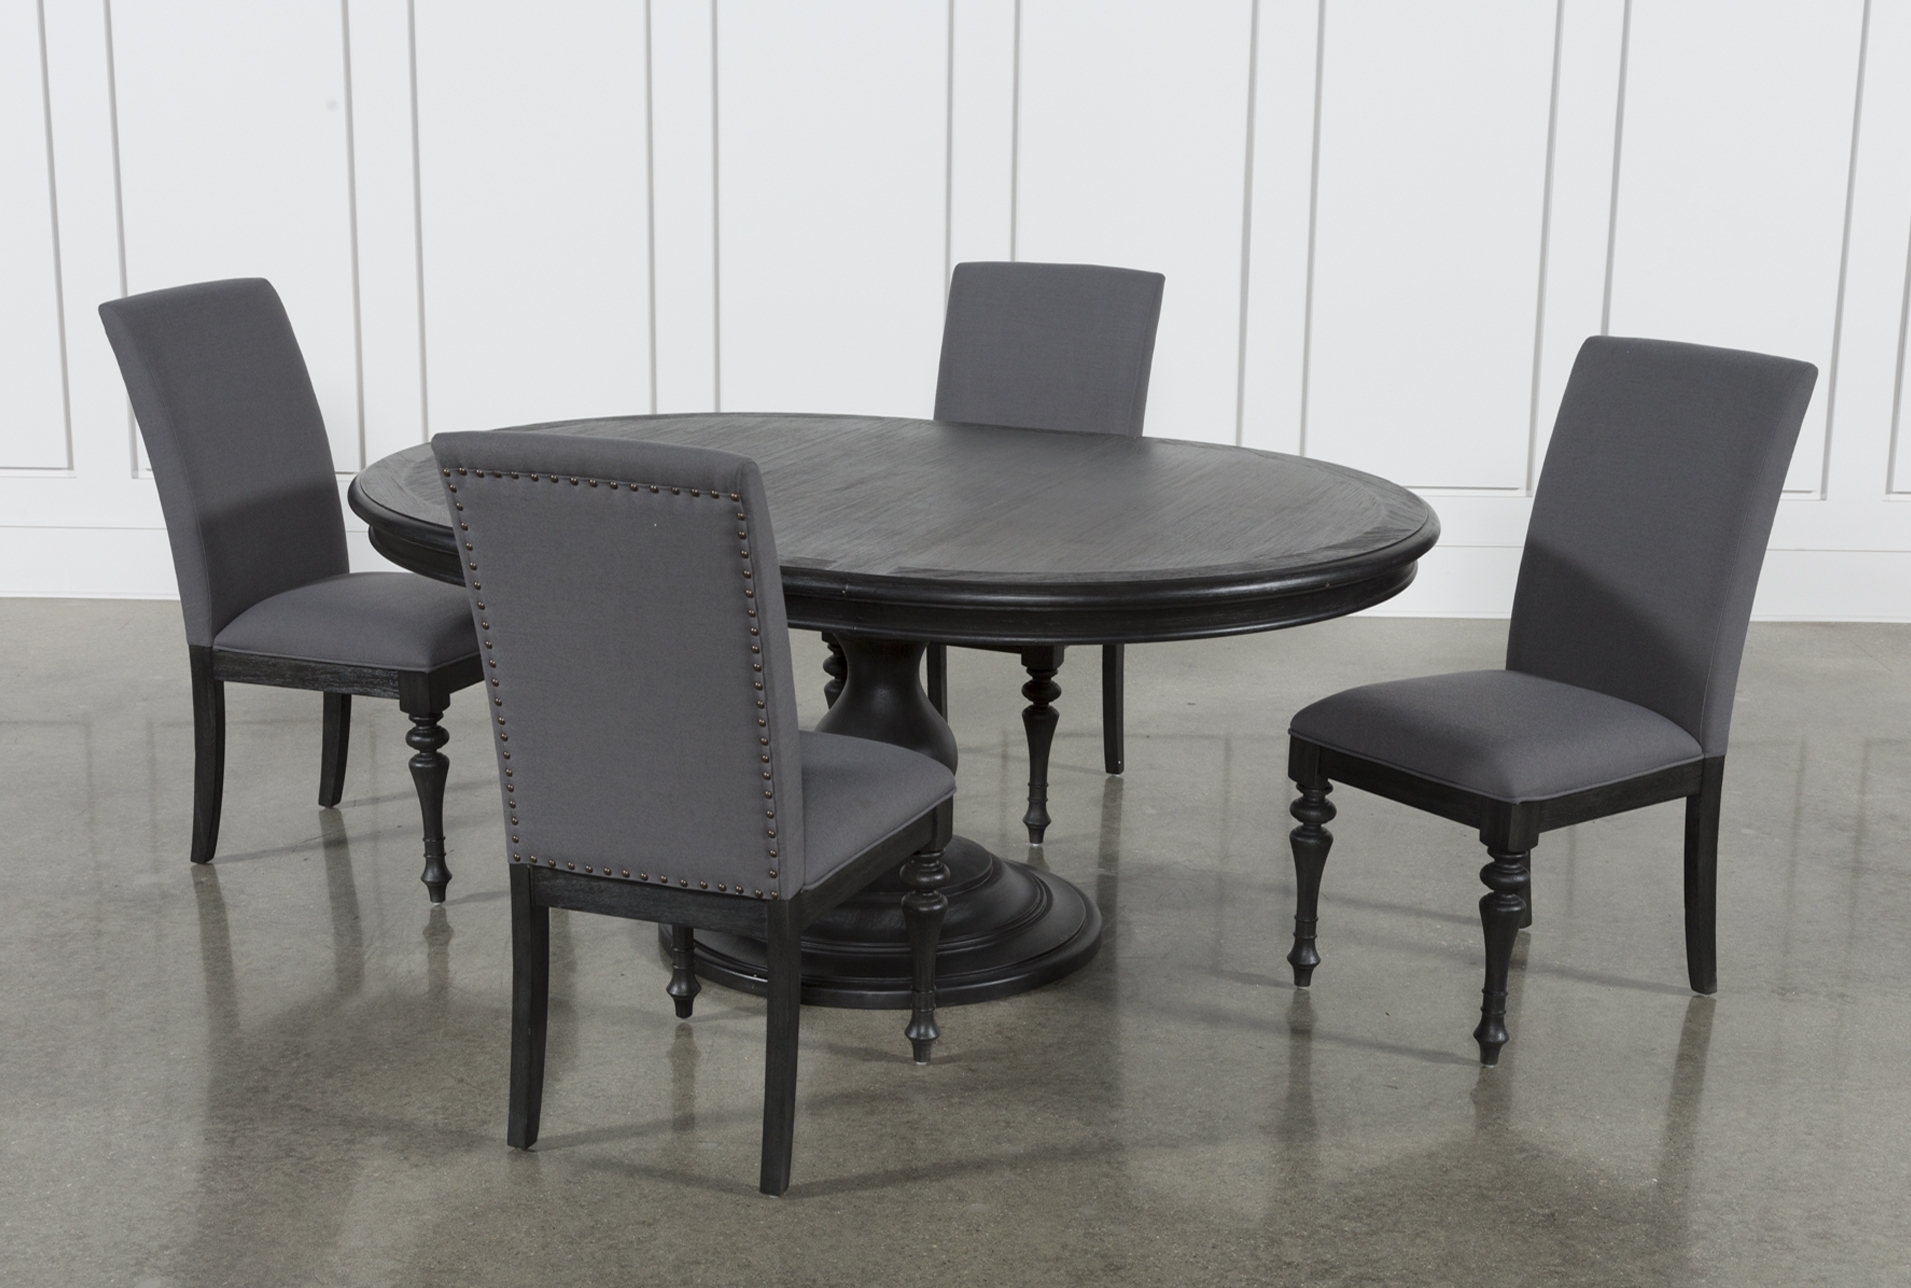 Most Recent Global Furniture Bar Table Black Within Caira Black 5 Piece Round Dining Sets With Upholstered Side Chairs (View 3 of 25)